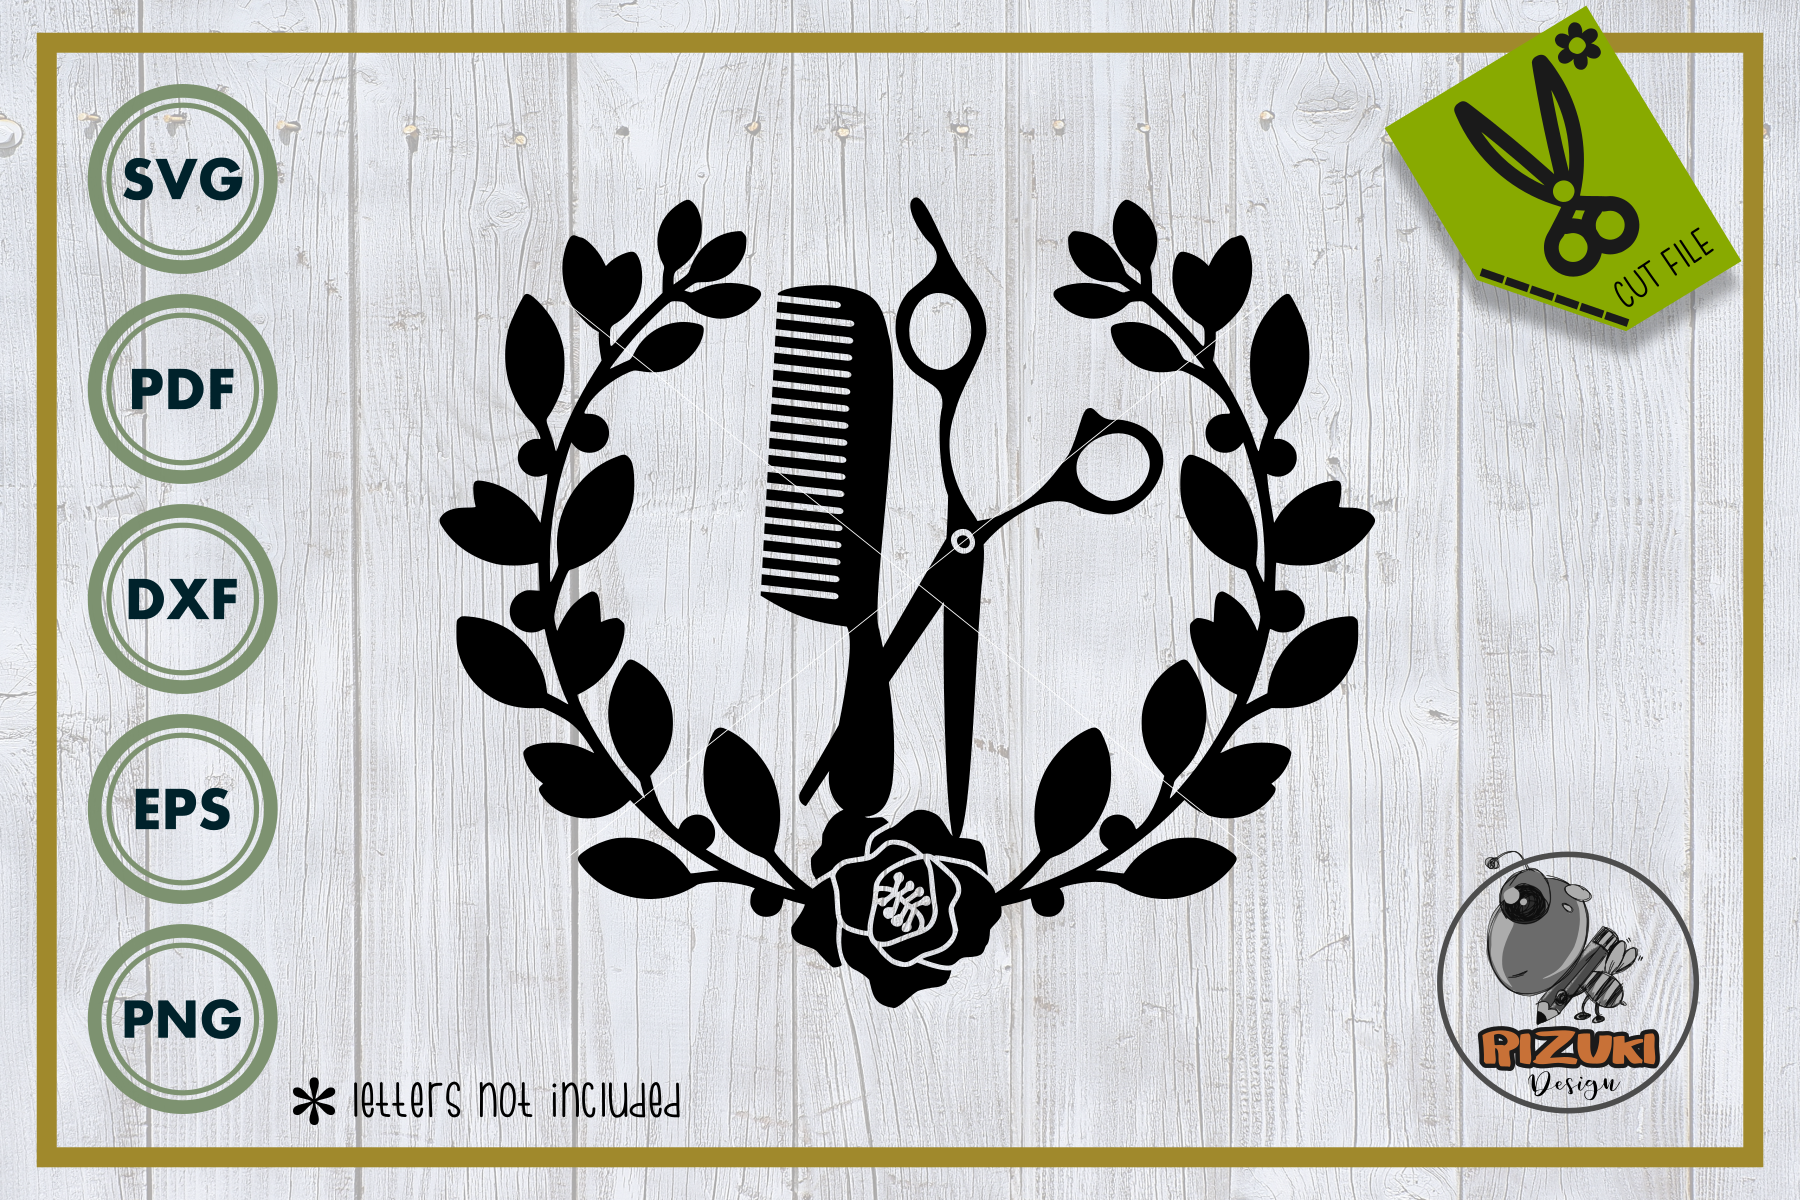 Download Free Salon Comb And Scissors With Wreath Graphic By Rizuki Store for Cricut Explore, Silhouette and other cutting machines.